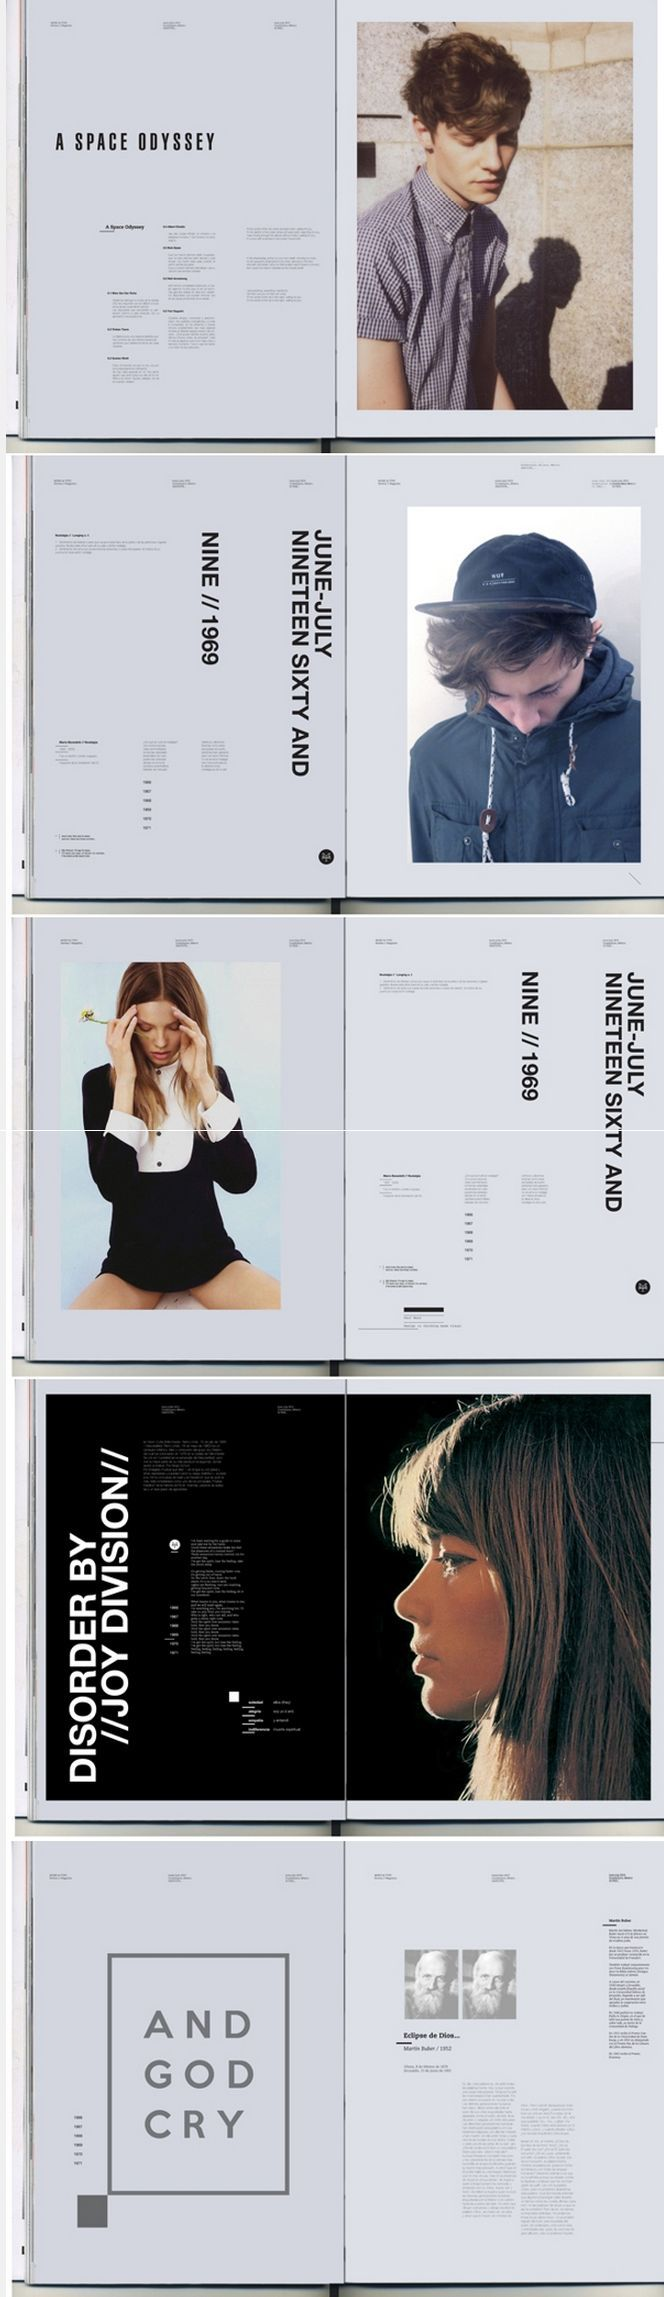 best 좋아하는 디자인 images on pinterest page layout graph